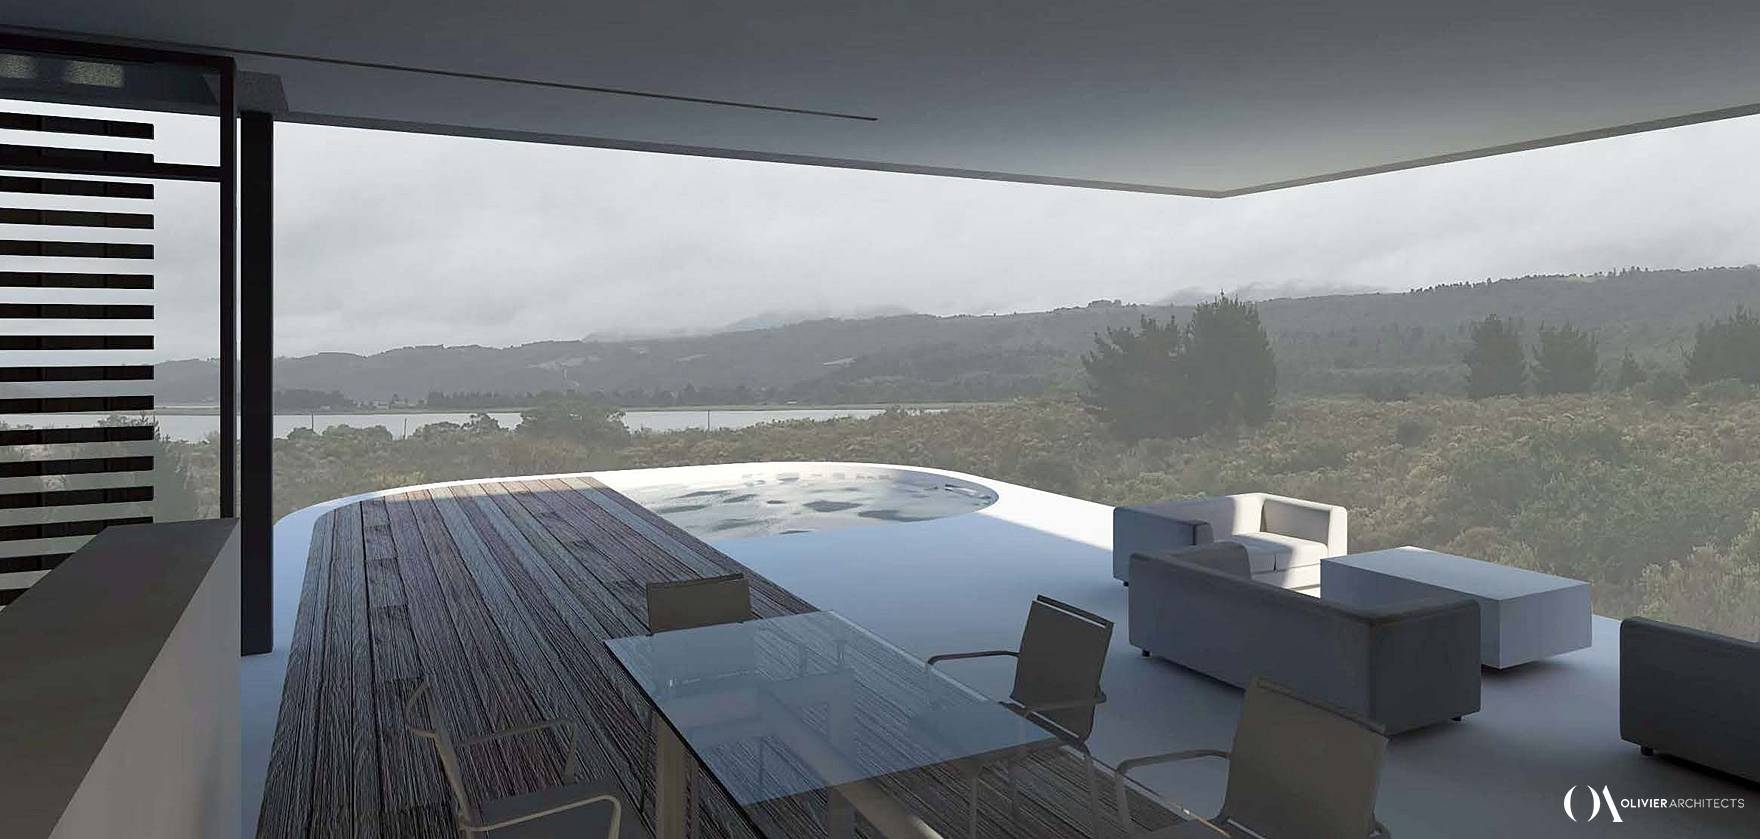 Lake house in Knysna, Sedgefield, South Africa, Olivier Architects